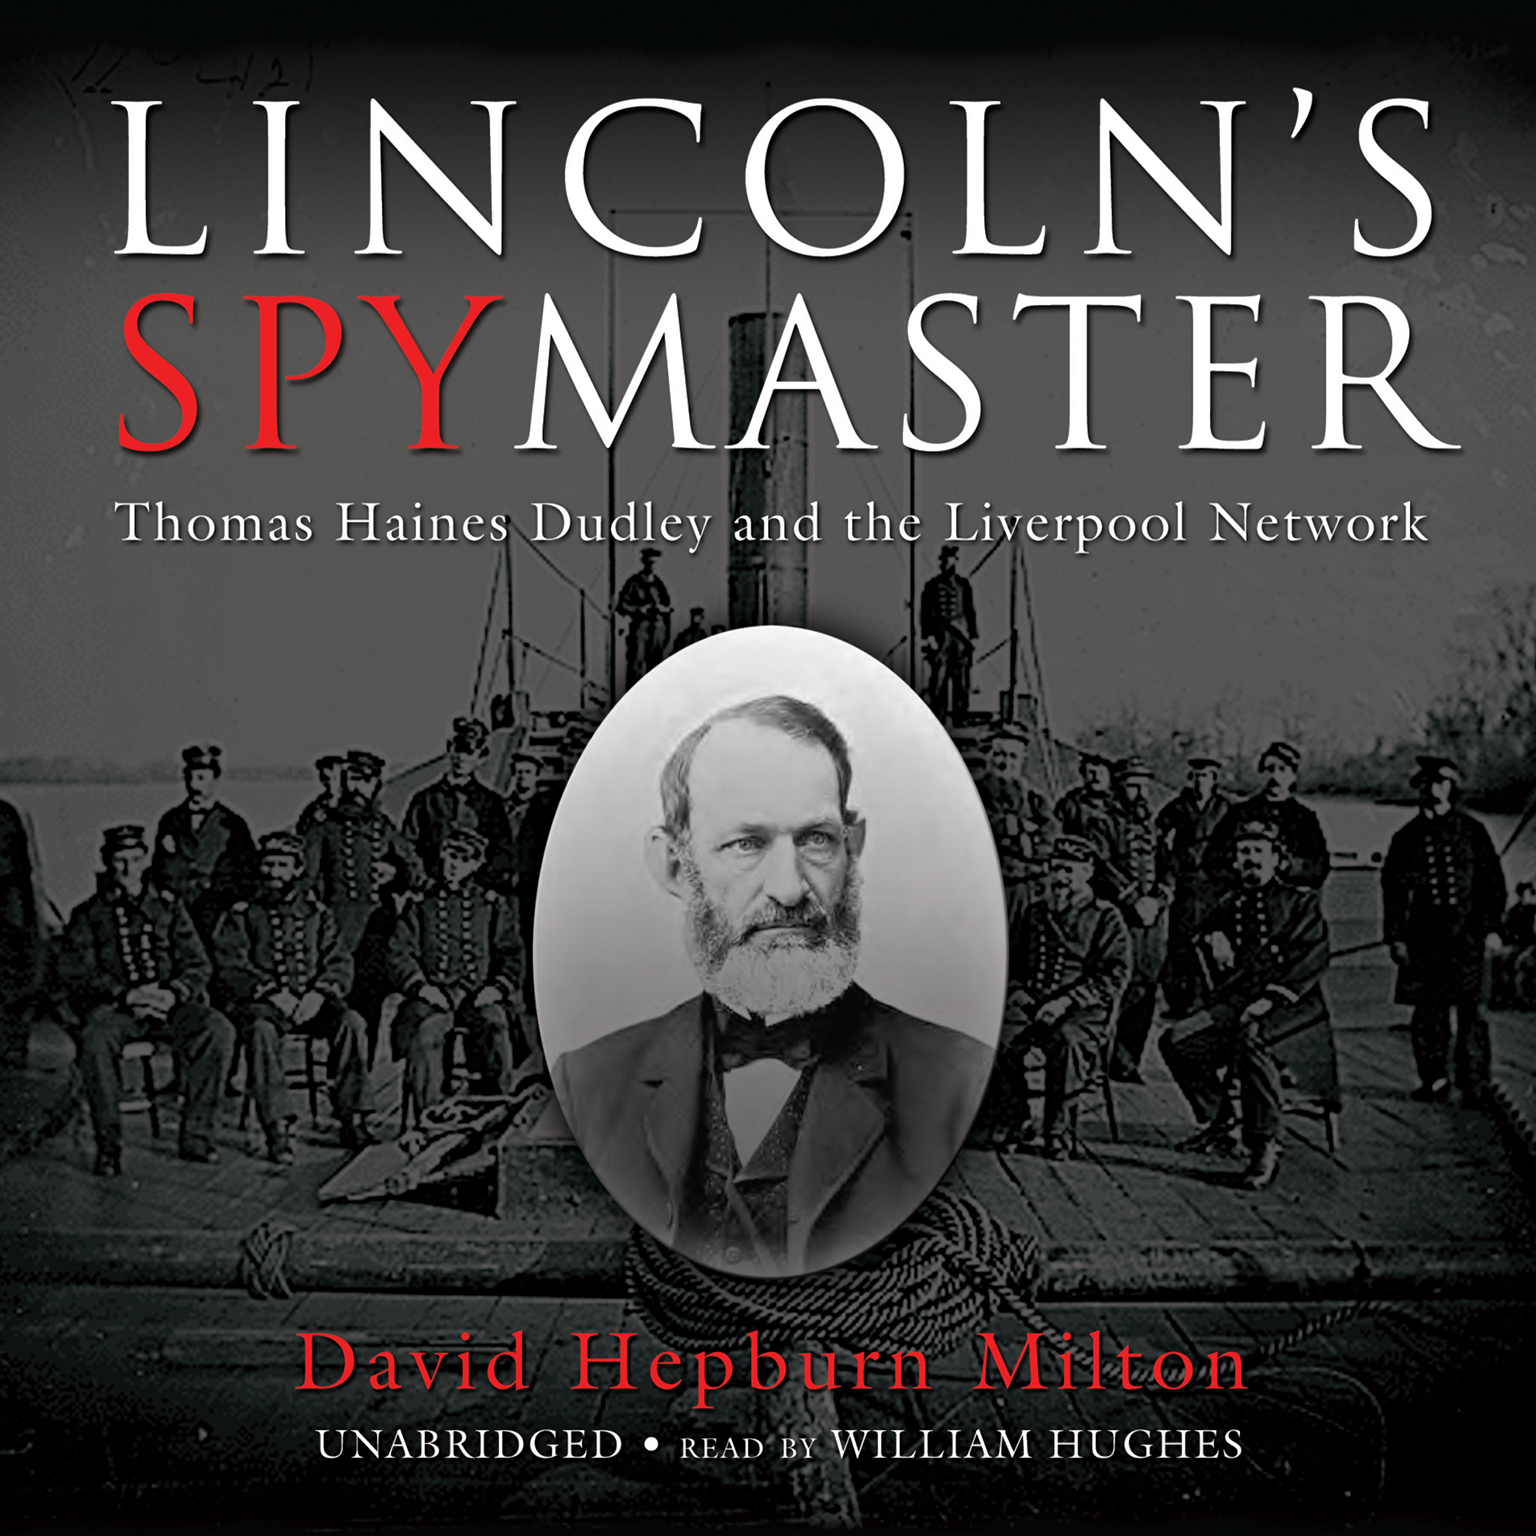 Printable Lincoln's Spymaster: Thomas Haines Dudley and the Liverpool Network Audiobook Cover Art